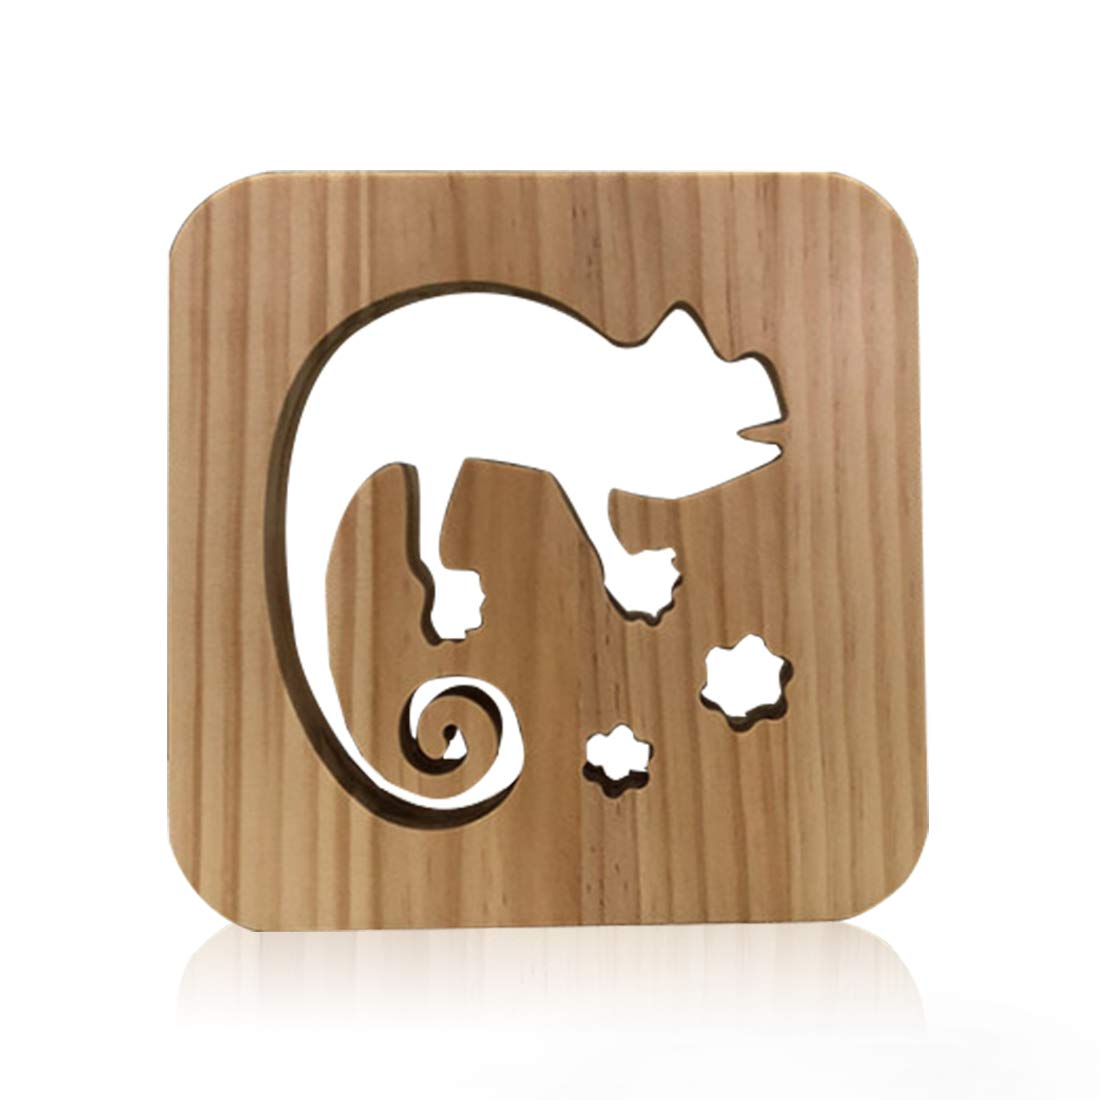 Wooden Chameleon Led Lamp for Children, LeKong 3D Wooden Carving Patterns, USB Plug in, Gift for Birthday & Friendship, Fit for Halloween & Christmas Decoration, 2018 New